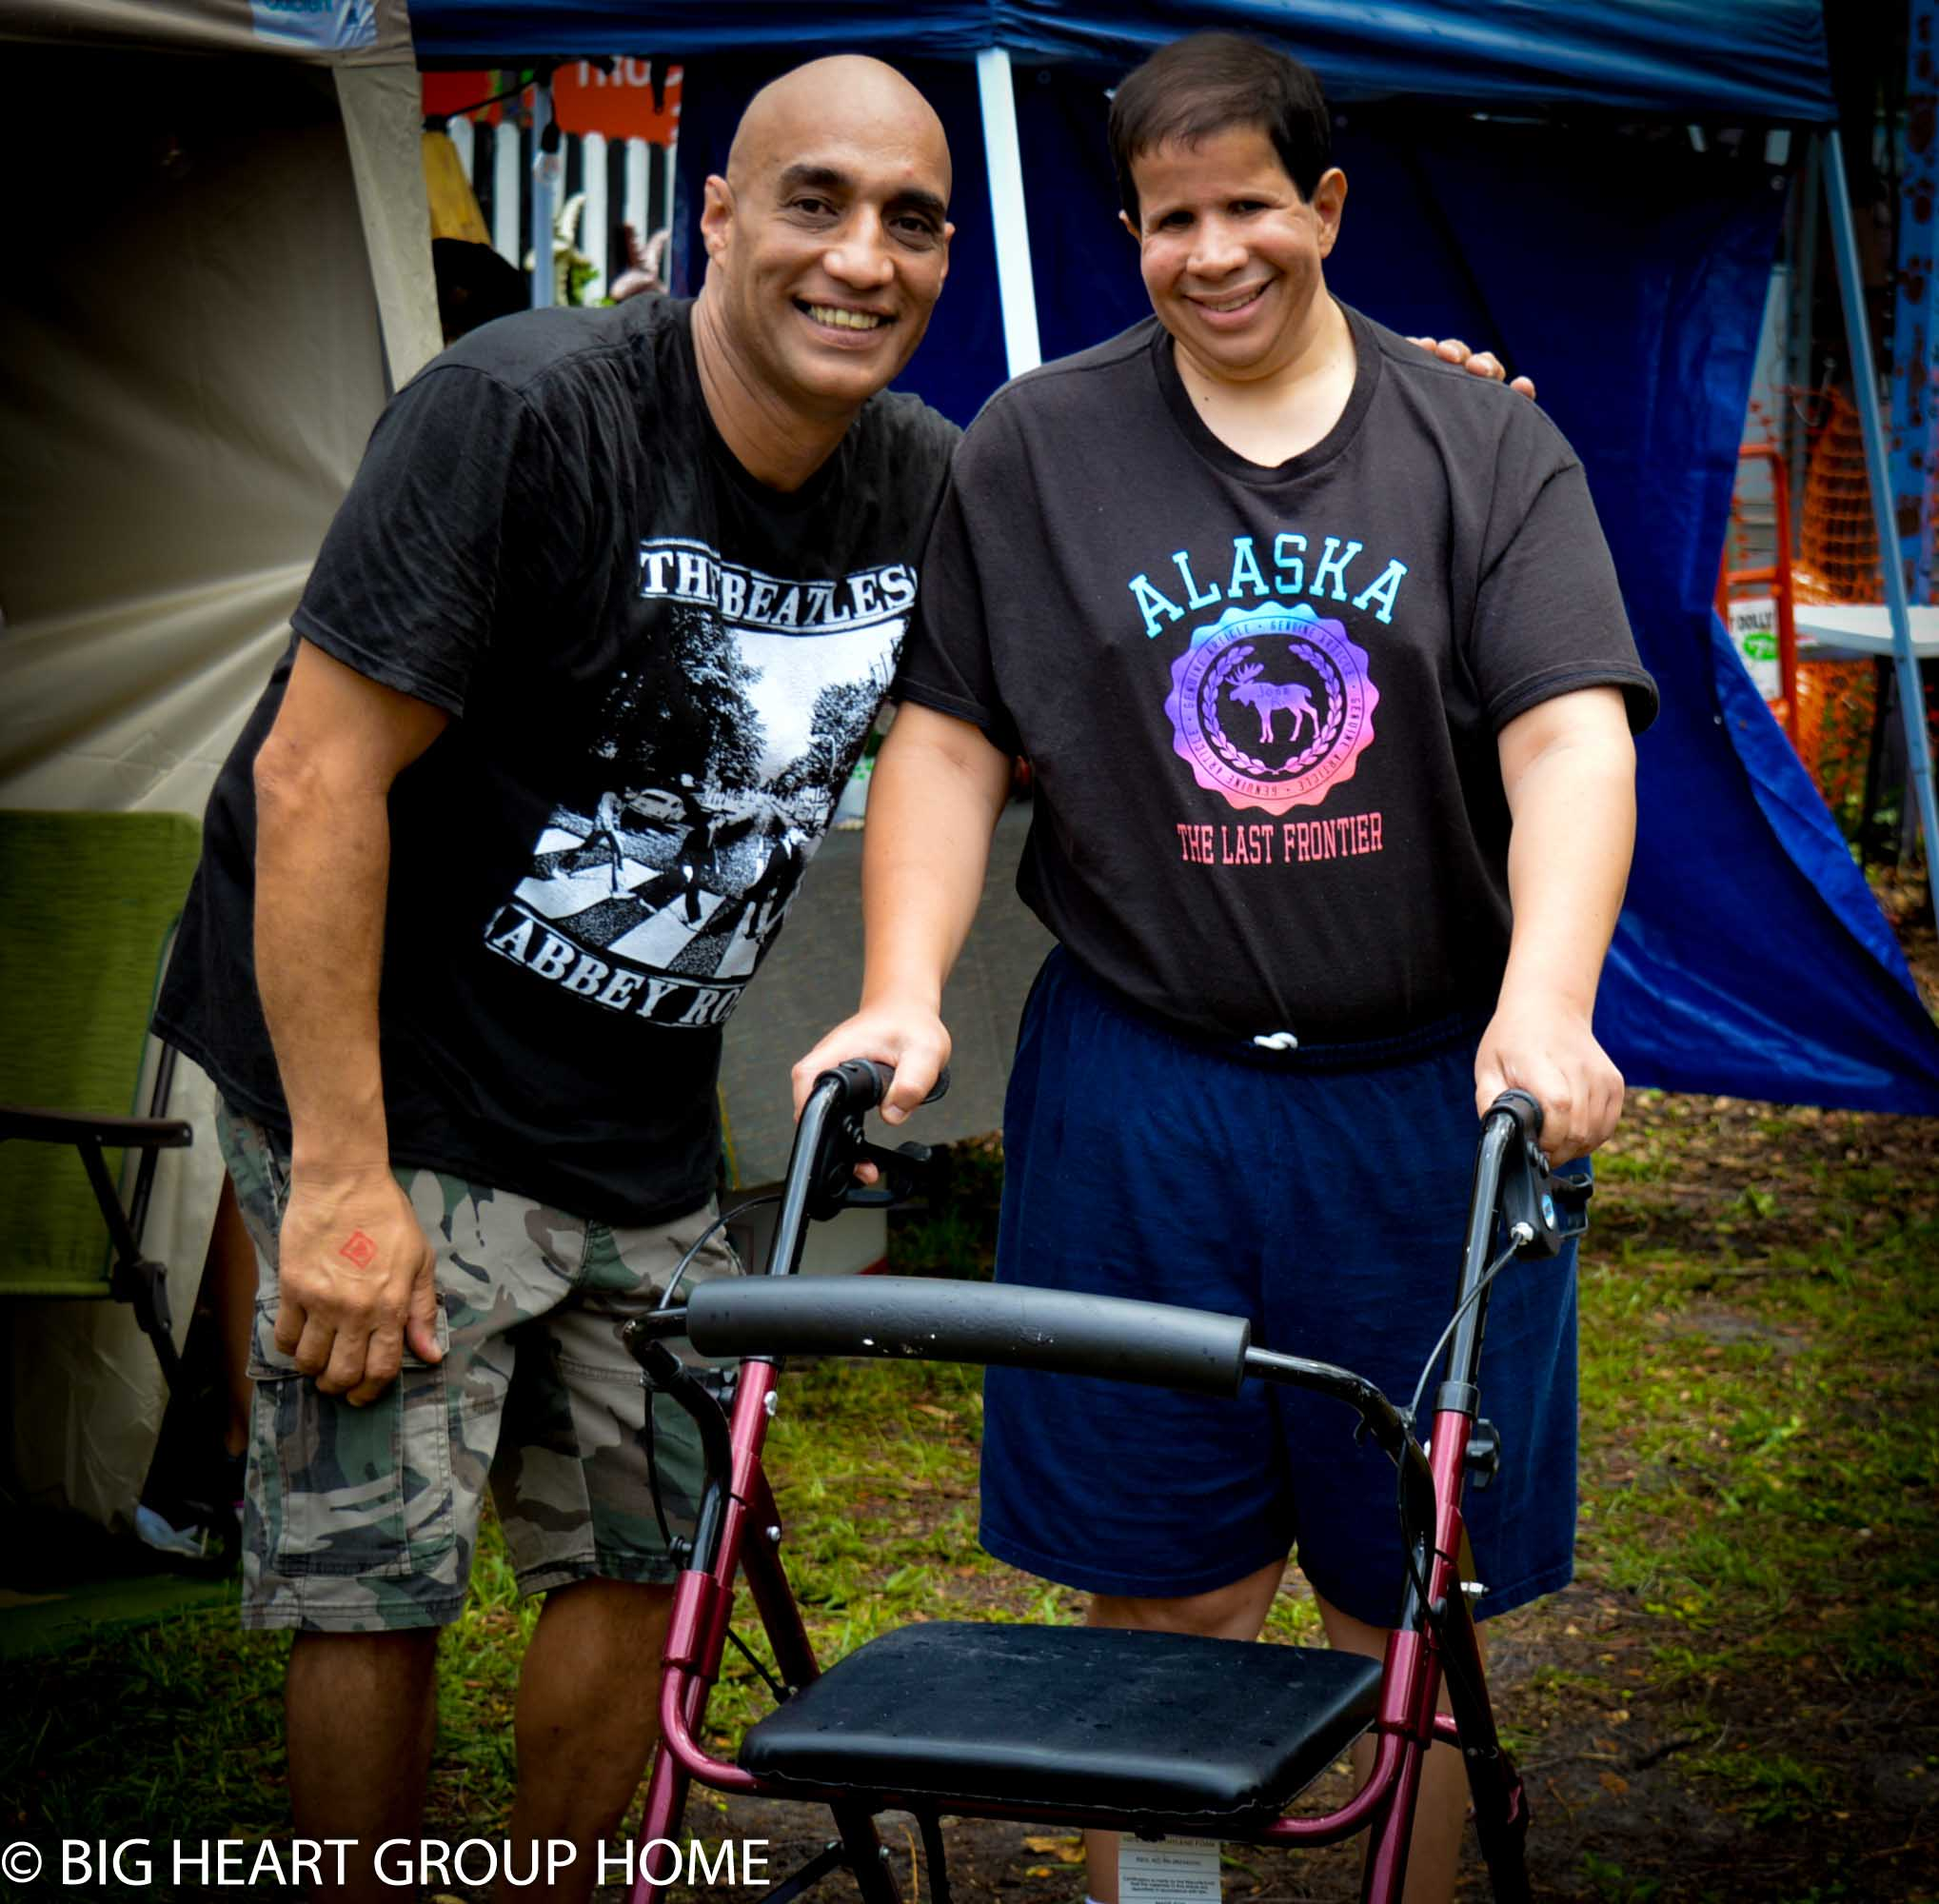 Robert Merced is an advocate for people with disabilities.